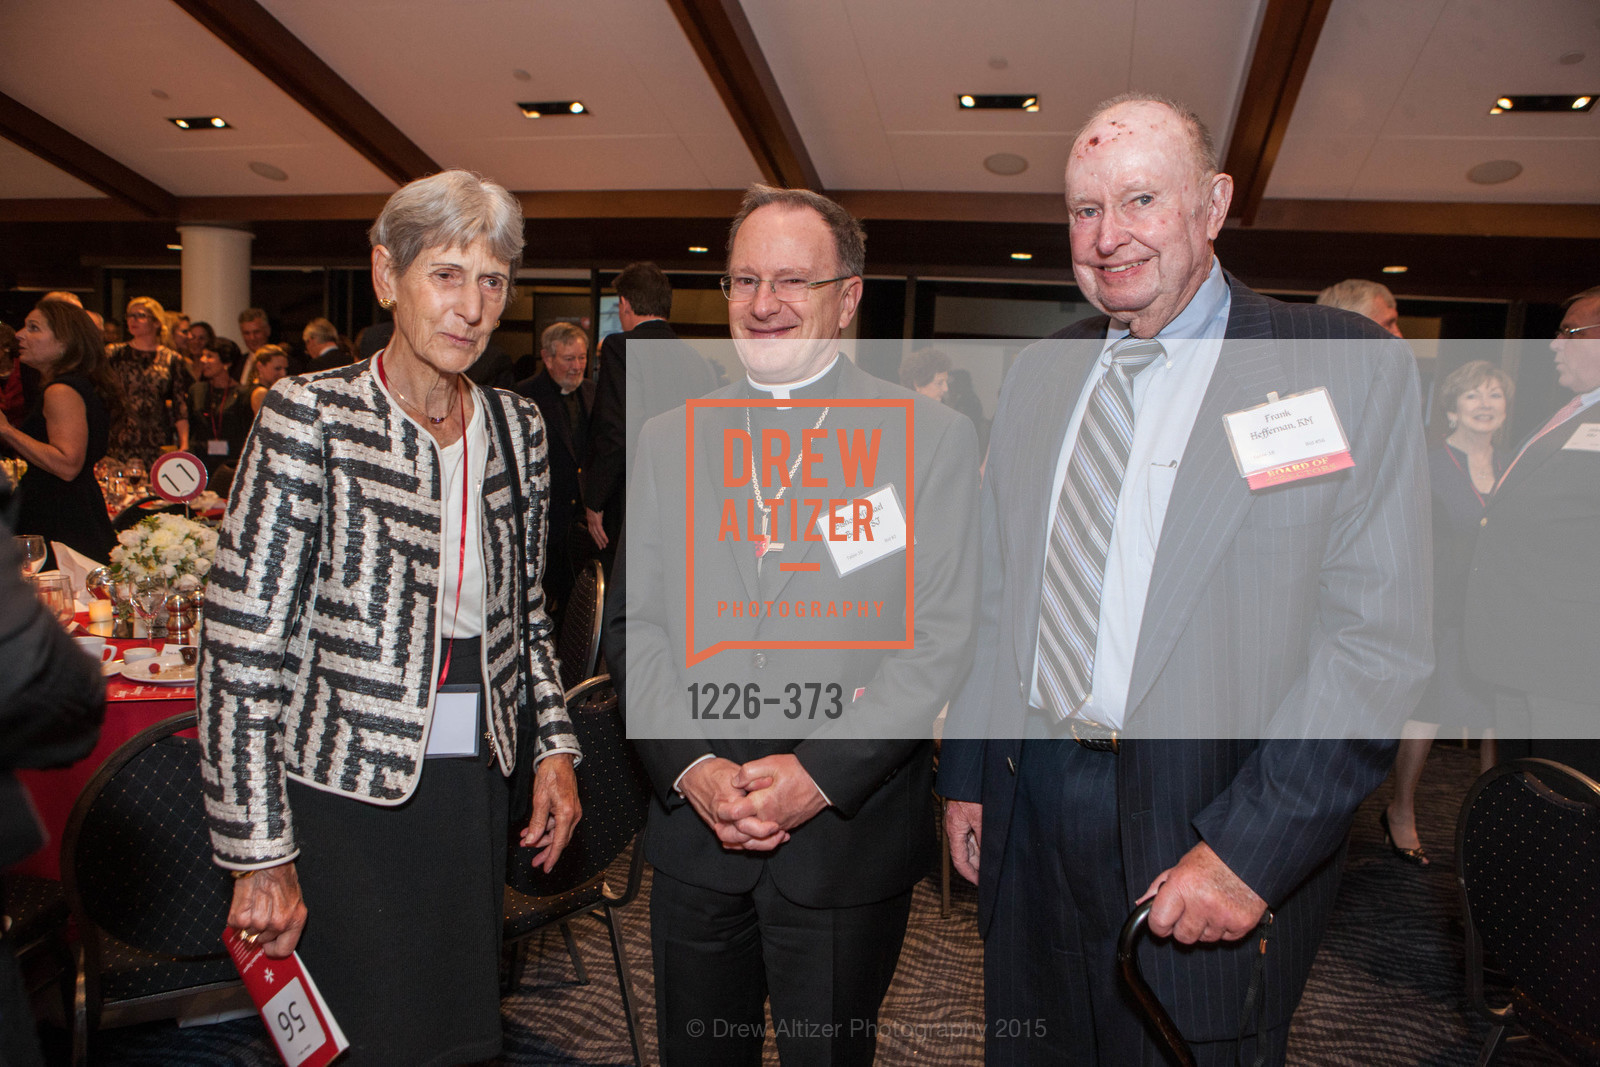 Lenore Heffernan, Michael Barber, Frank Heffernan, Sovereign Order of Malta Presents: A Knight for Champions, 7th Annual Silver Chalice Awards Dinner, St. Francis Yacht Club. 99 Yacht Rd, October 13th, 2015,Drew Altizer, Drew Altizer Photography, full-service event agency, private events, San Francisco photographer, photographer California